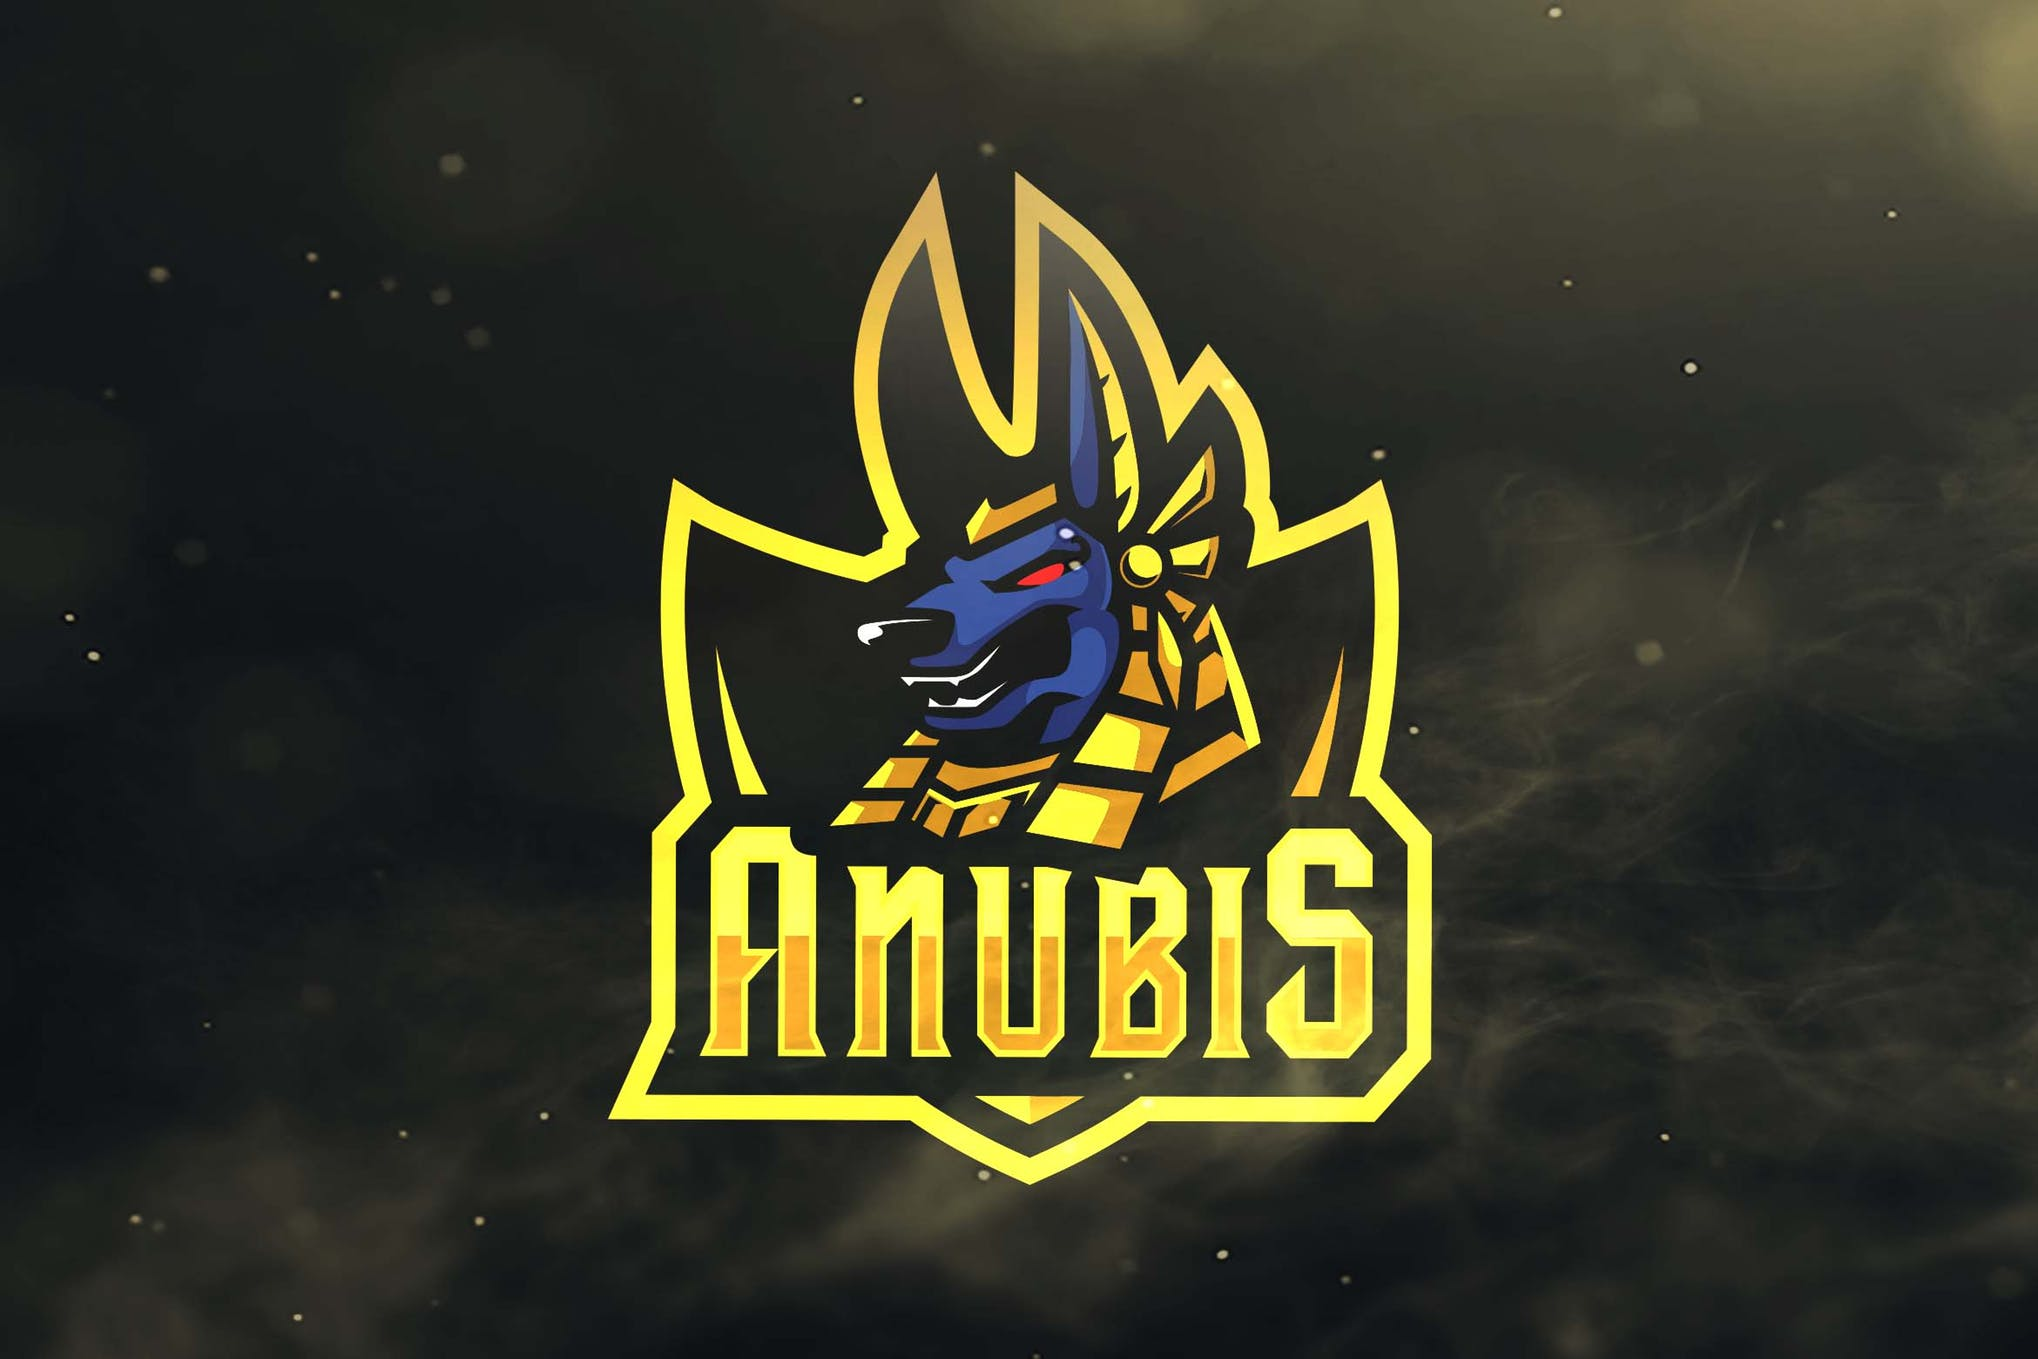 Anubis Sport and Esports Logos by ovozdigital on Envato Elements.